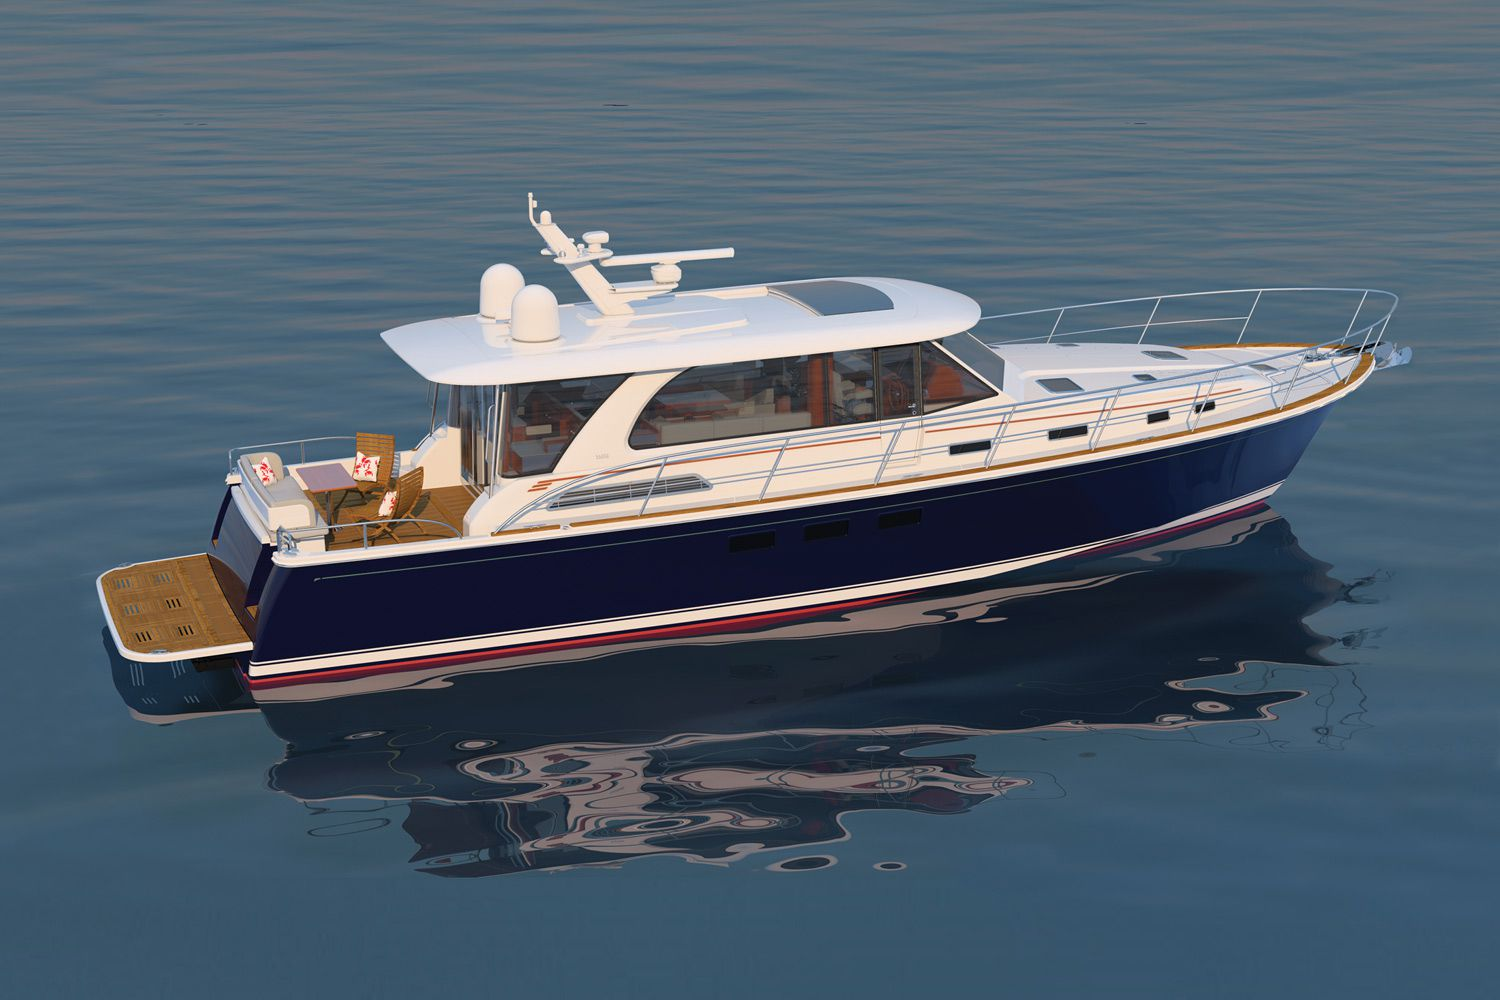 The Sabre 58 Salon Express' blue hull and white superstructure create a classic Downeaster appeal.